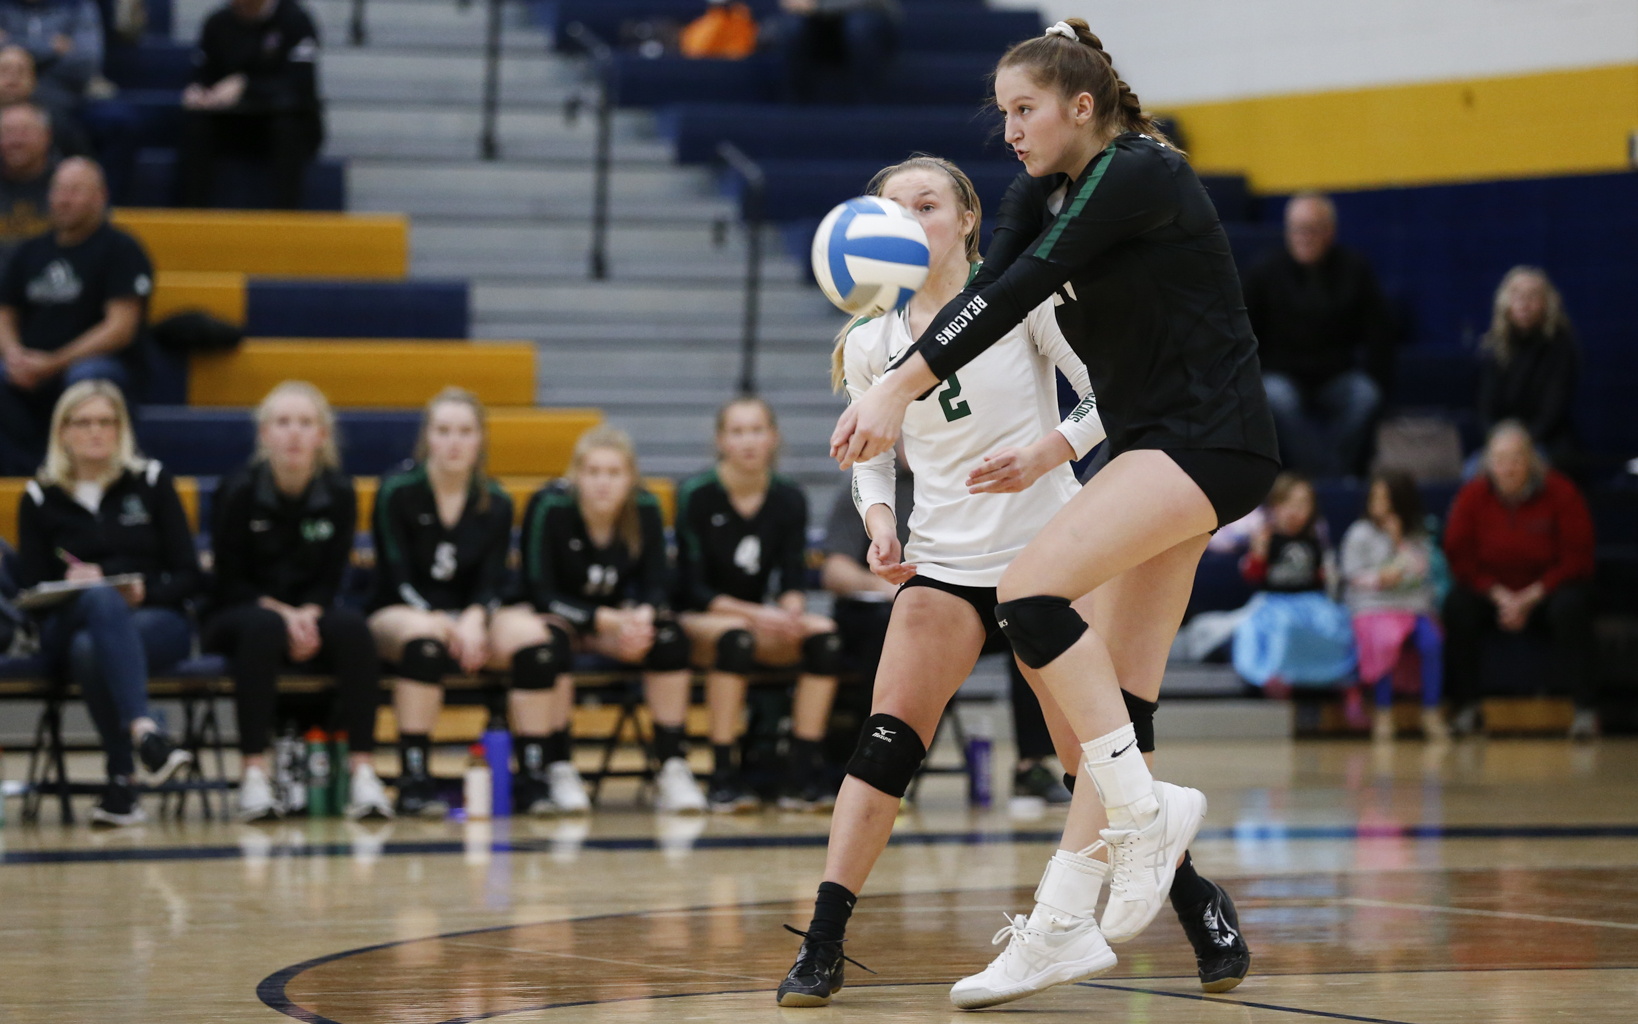 Concordia Academy's Sydney Pelzer (10) returns a serve against Holy Angels. The Beacons defeated the Stars in three sets (25-18, 25-20, 25-21). Photo by Jeff Lawler, SportsEngine